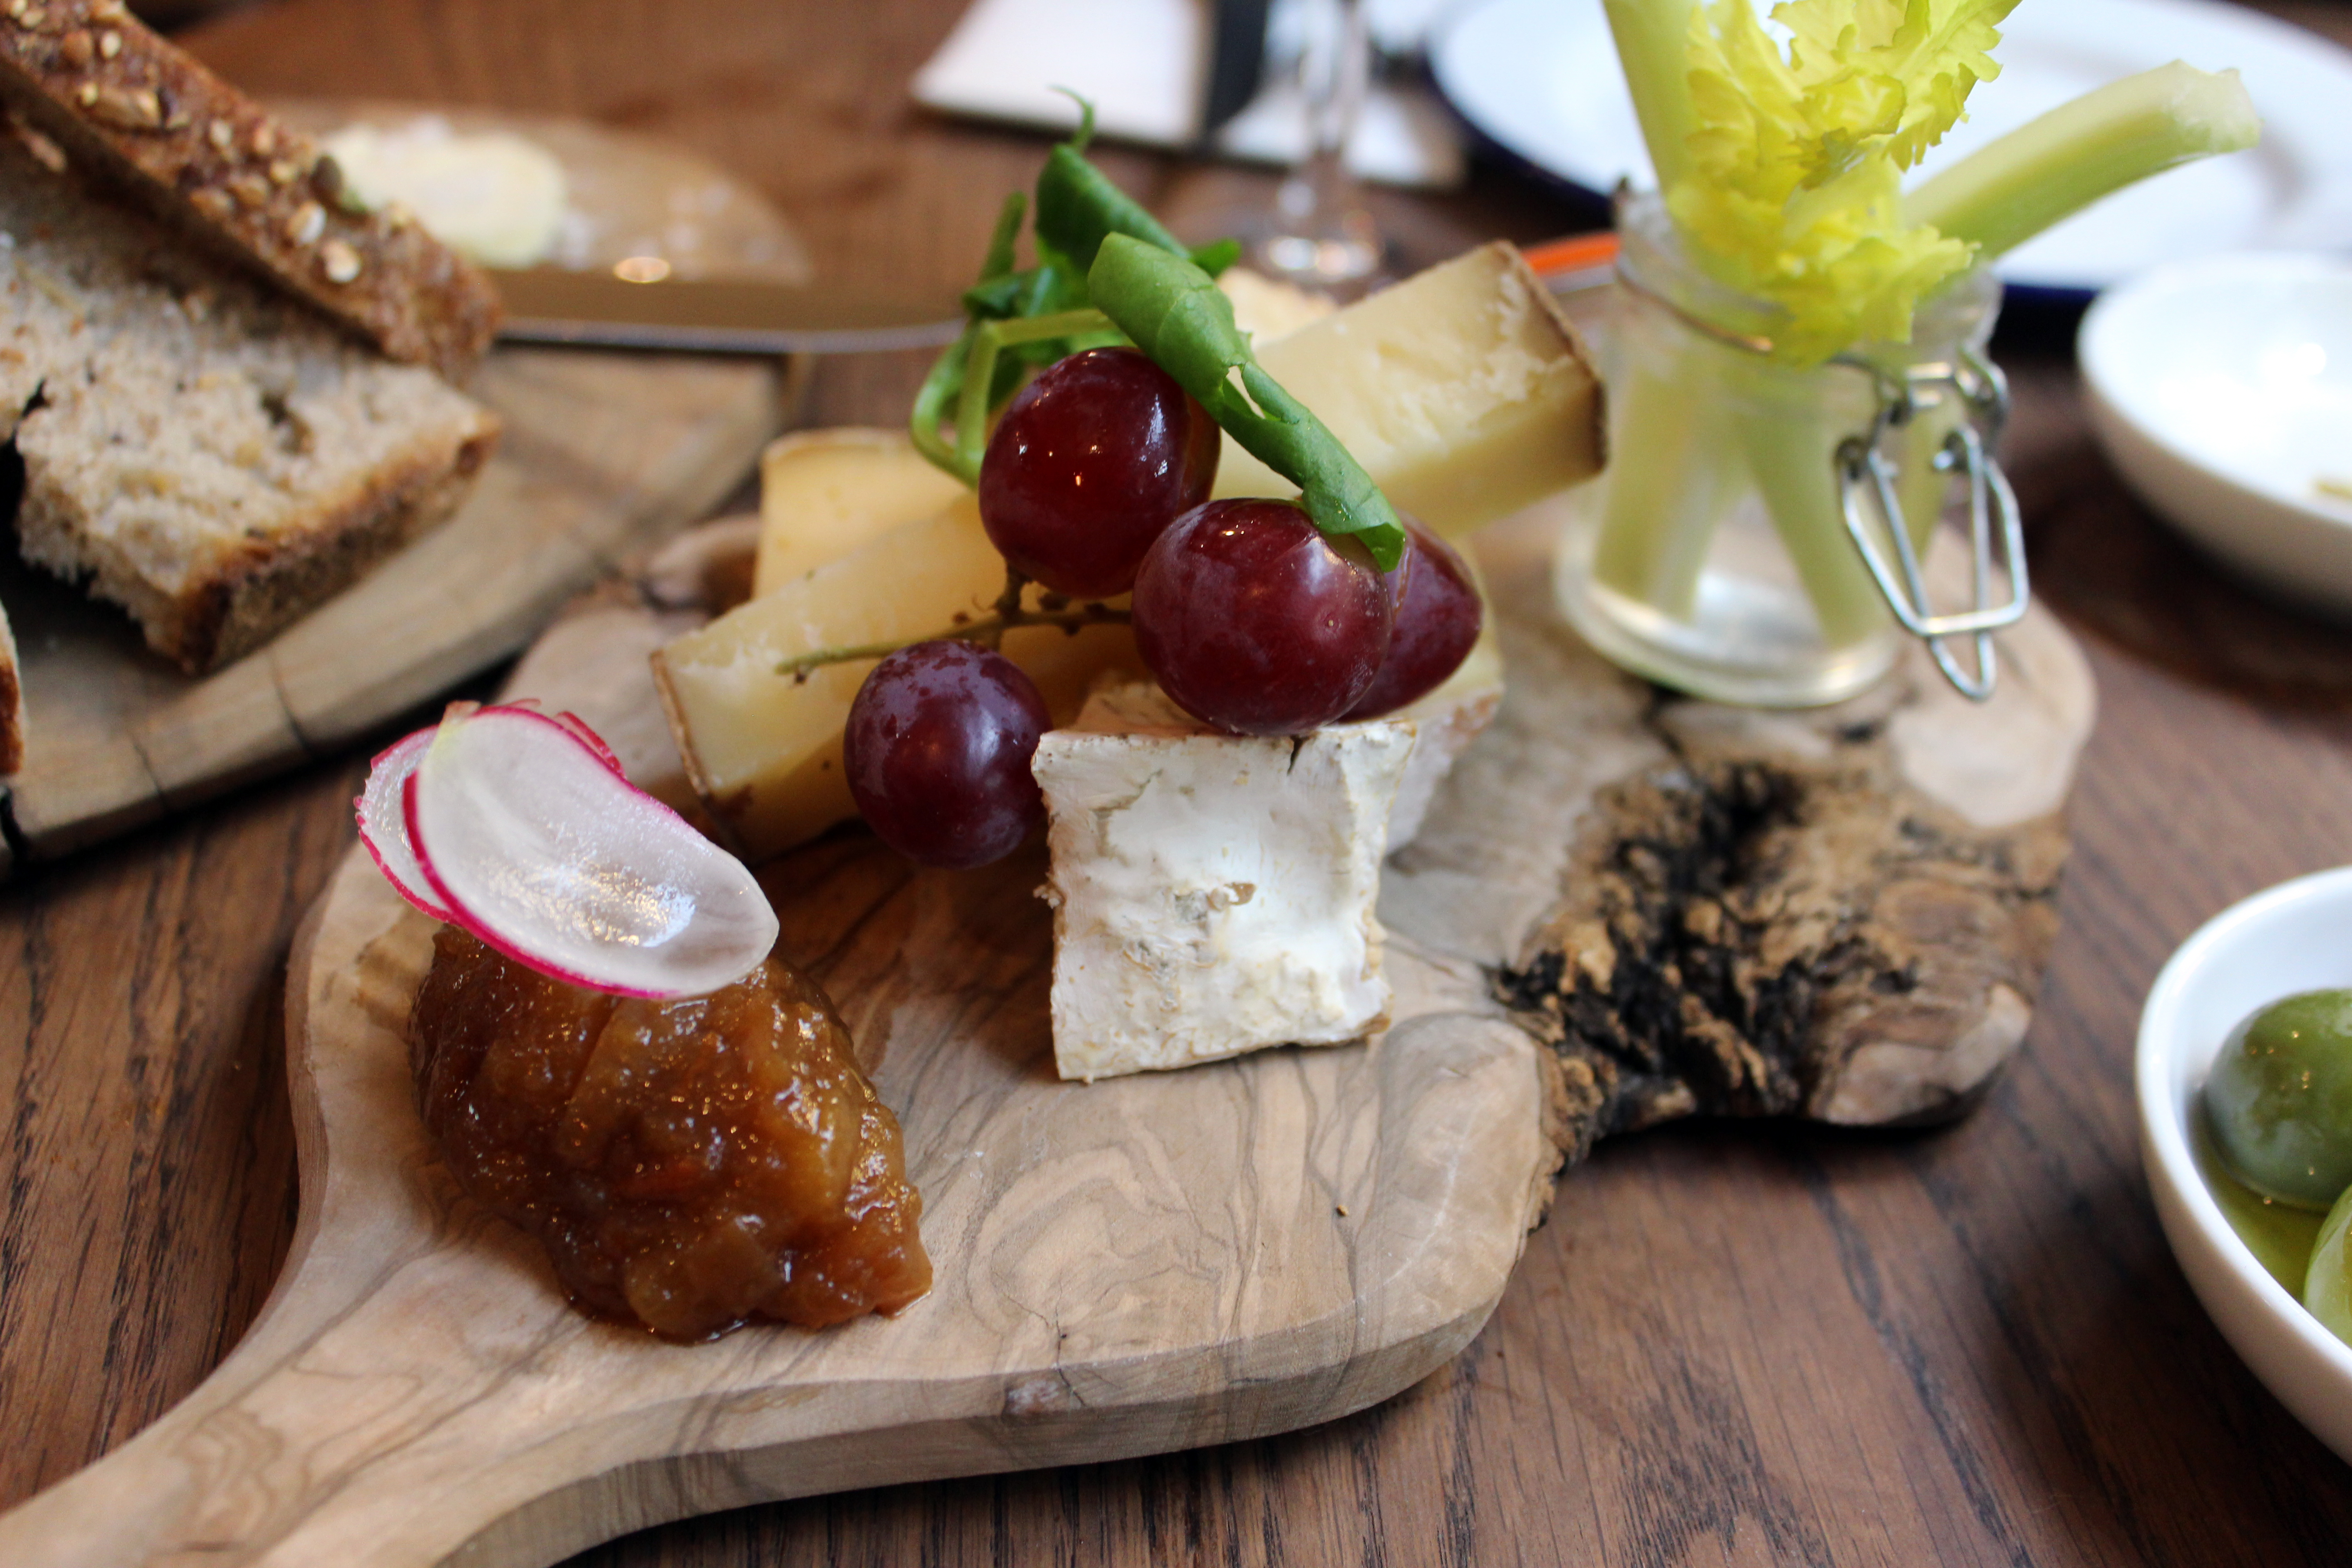 Bordelaise cheese board